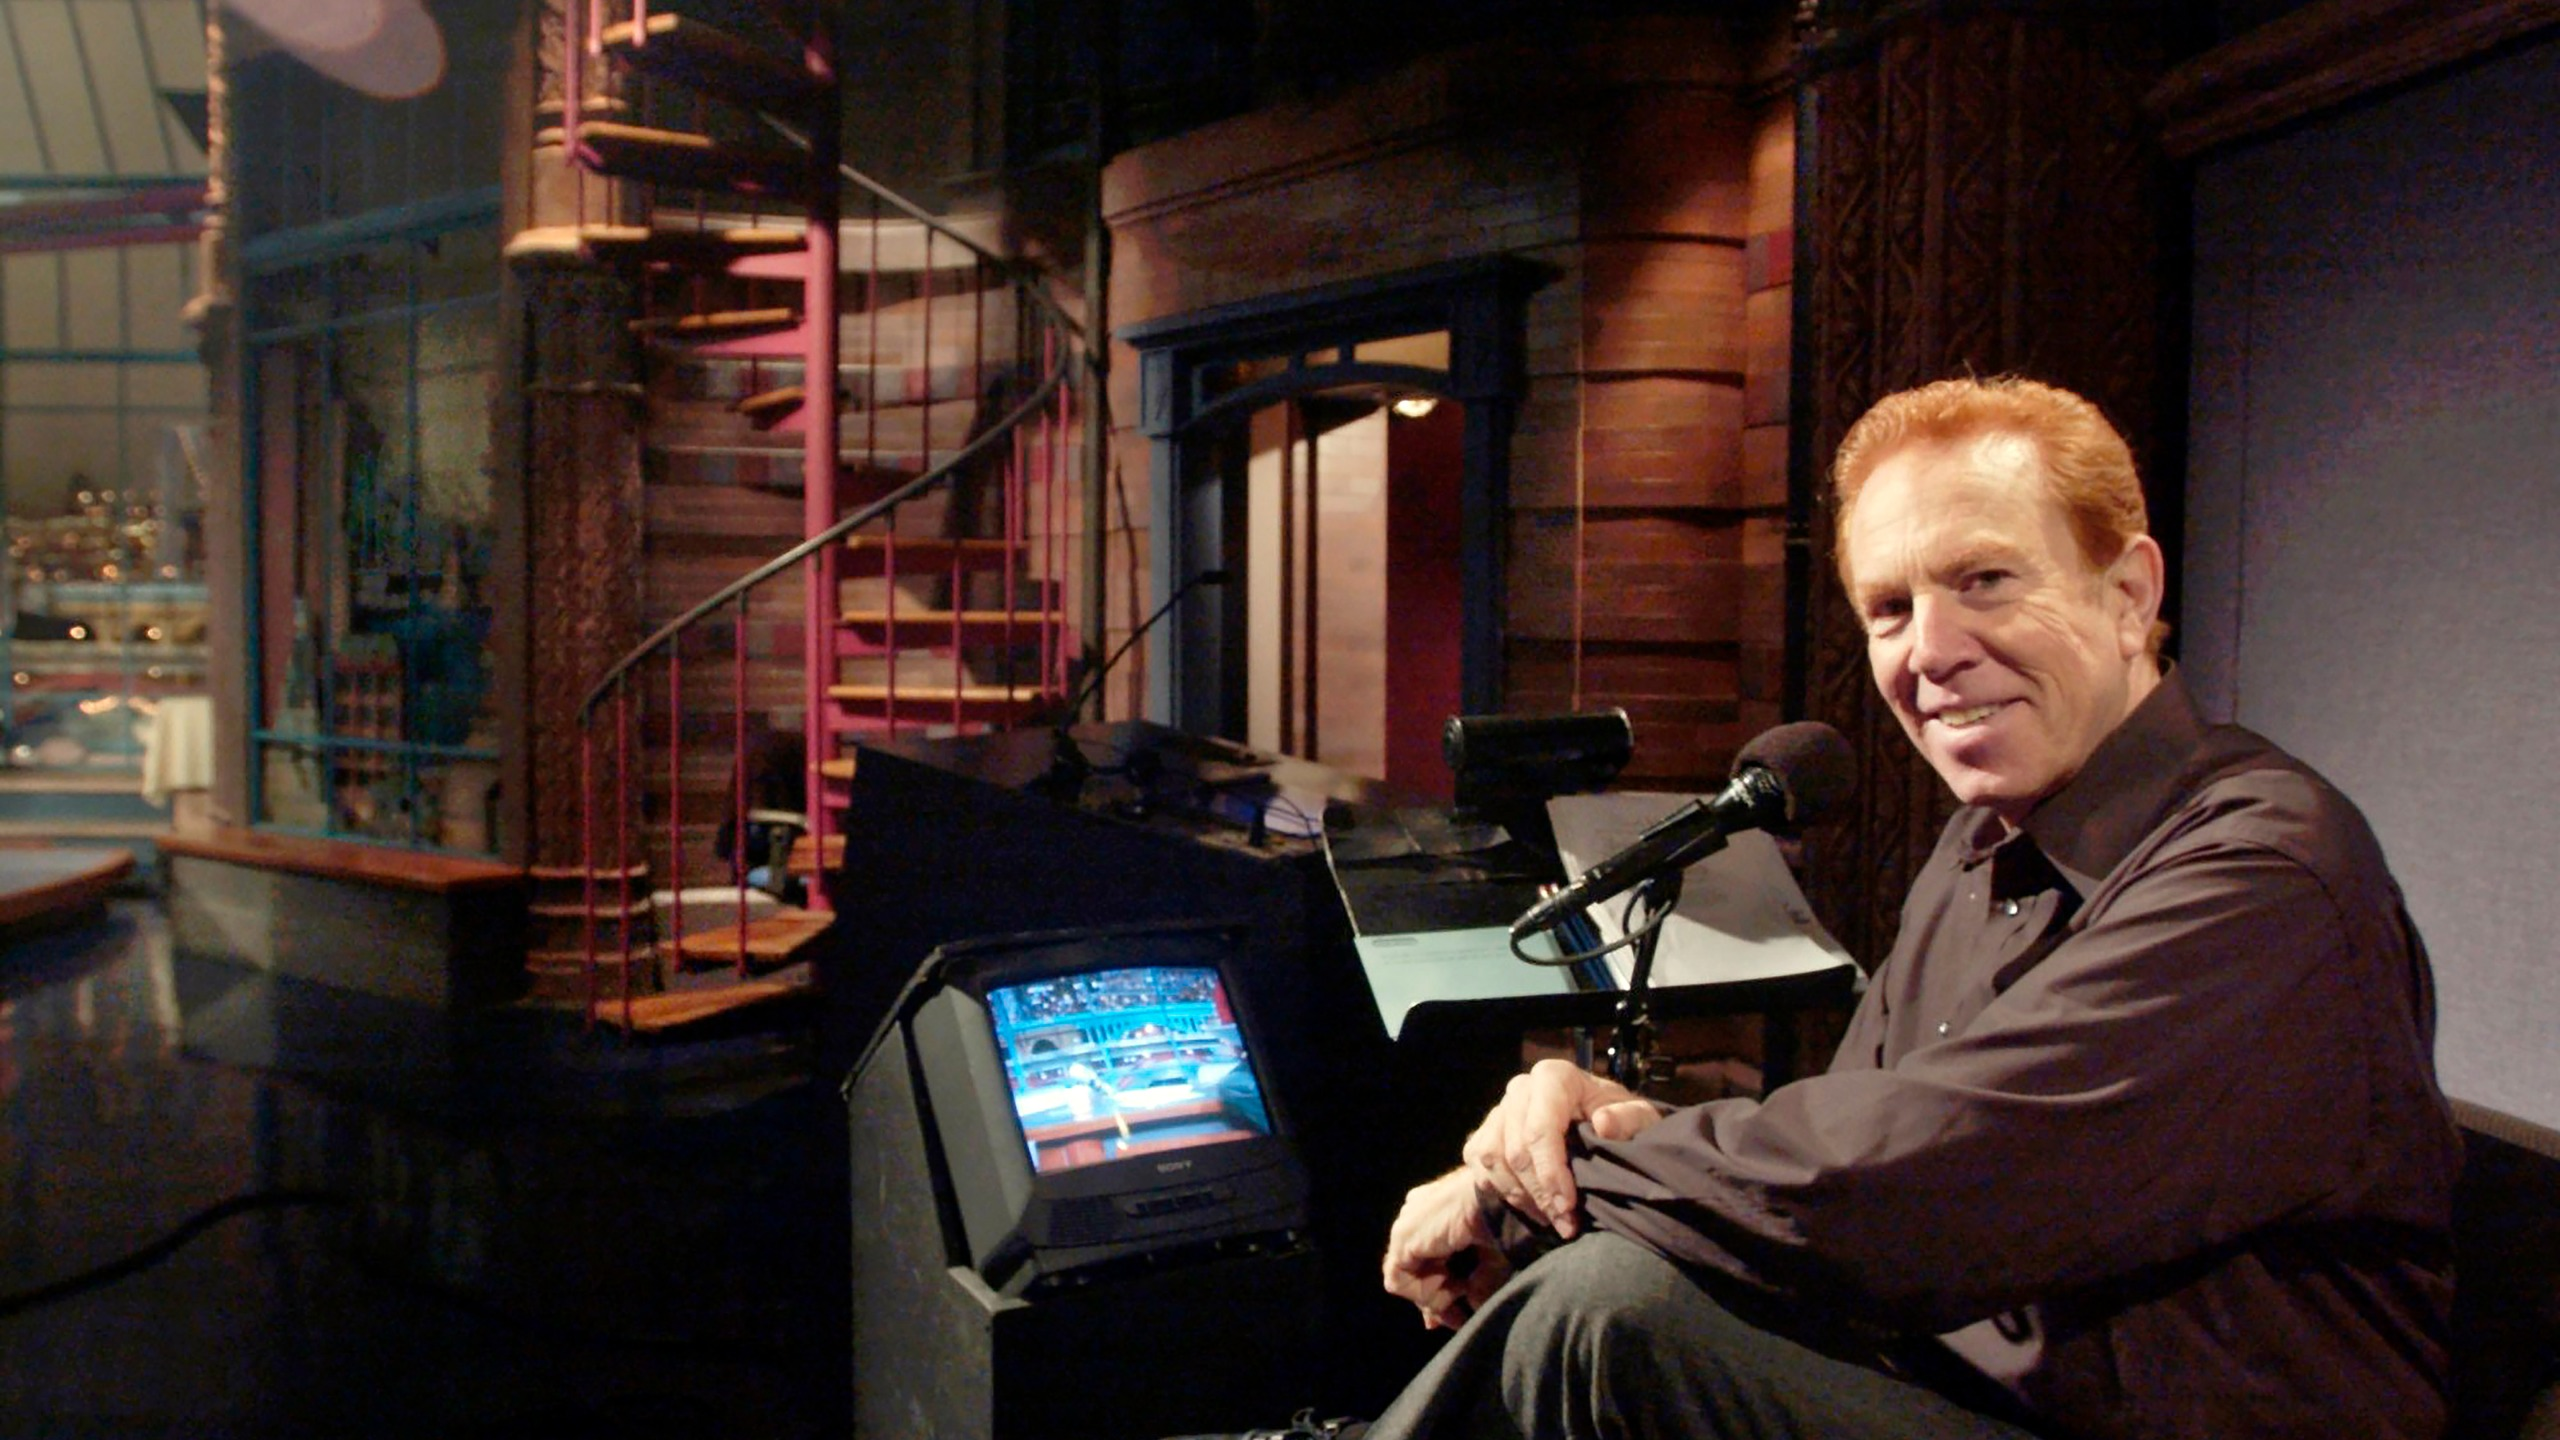 """In this Nov. 20, 2003, file photo, """"Late Show With David Letterman'' announcer Alan Kalter poses in the the Late Show studio in New York. Kalter, the quirky, red-headed announcer for David Letterman for two decades who frequently appeared in the show's comedy bits, has died Monday, Oct. 4, 2021, at Stamford Hospital in Connecticut. He was 78. (Andrew Sullivan/Hearst Connecticut Media via AP, File)"""